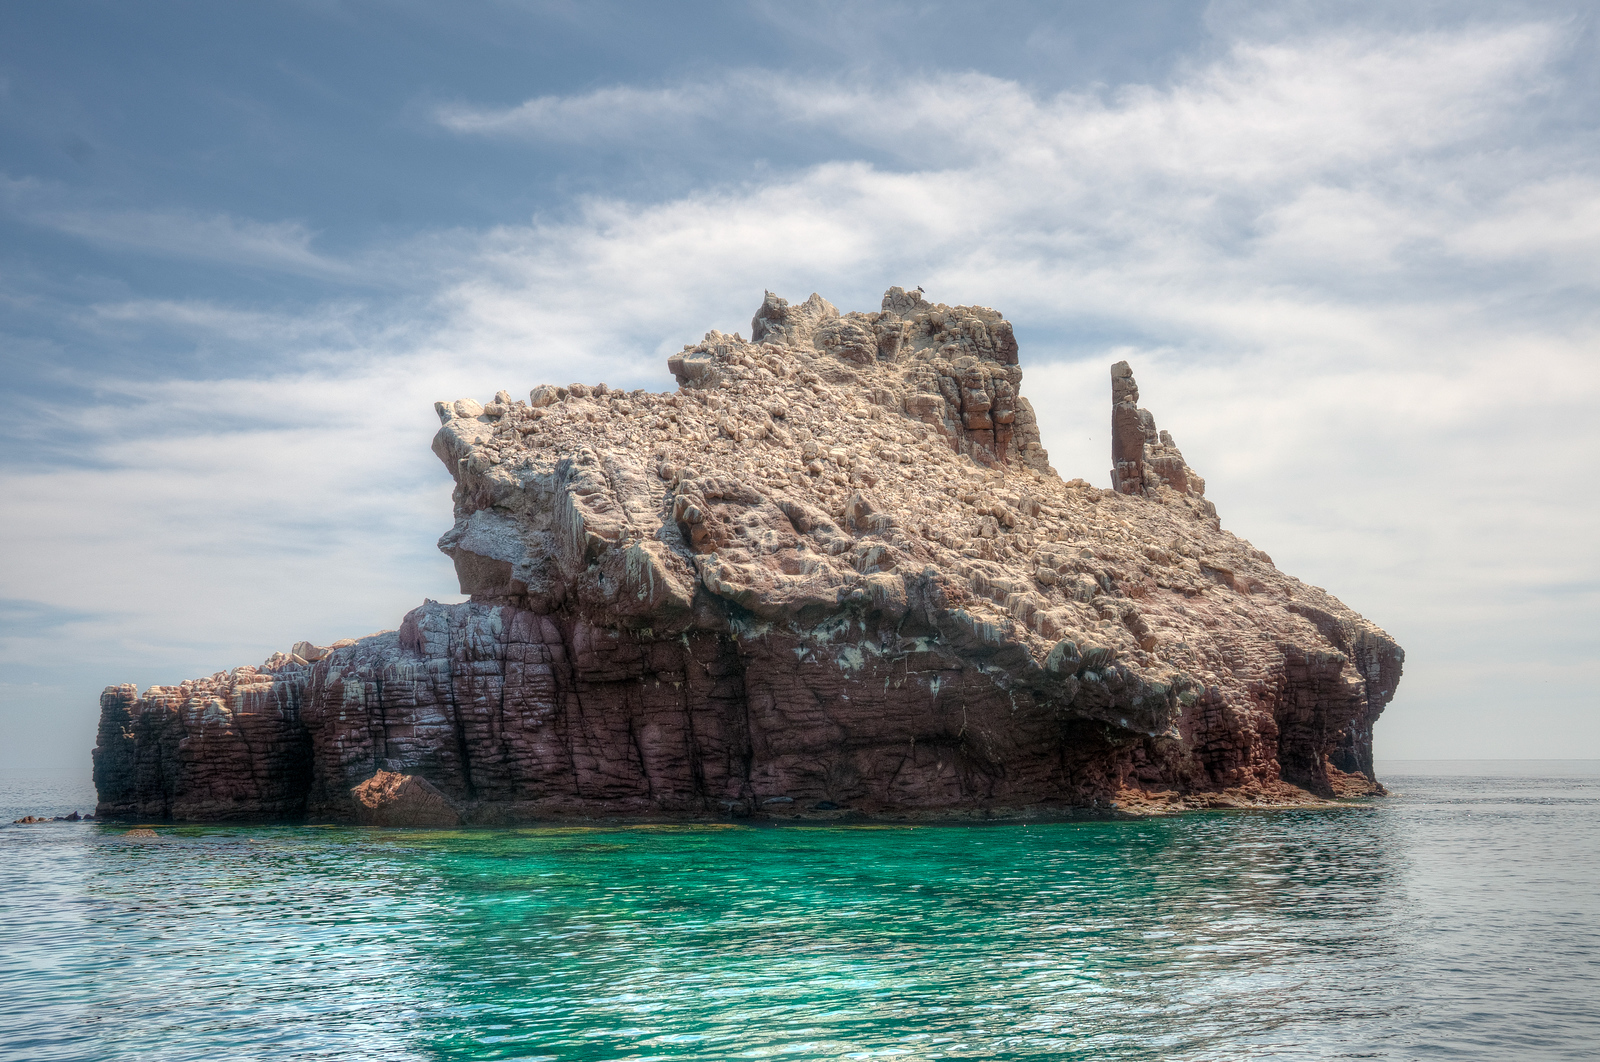 Islands and Protected Areas of the Gulf of California UNESCO World Heritage Site, Mexico